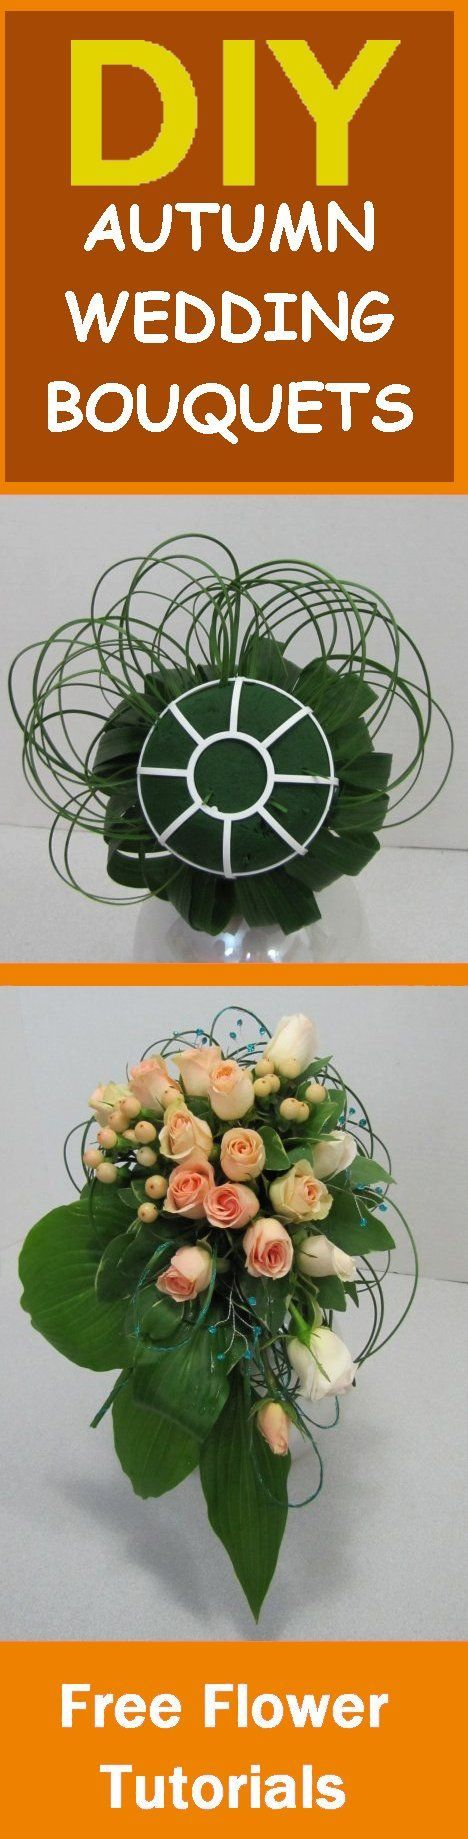 How to Make Wedding Bouquets - Free Flower Tutorials  Learn how to make bridal bouquets, wedding corsages, groom boutonnieres, church decorations and reception centerpieces.  Buy wholesale flowers and discount florist supplies.